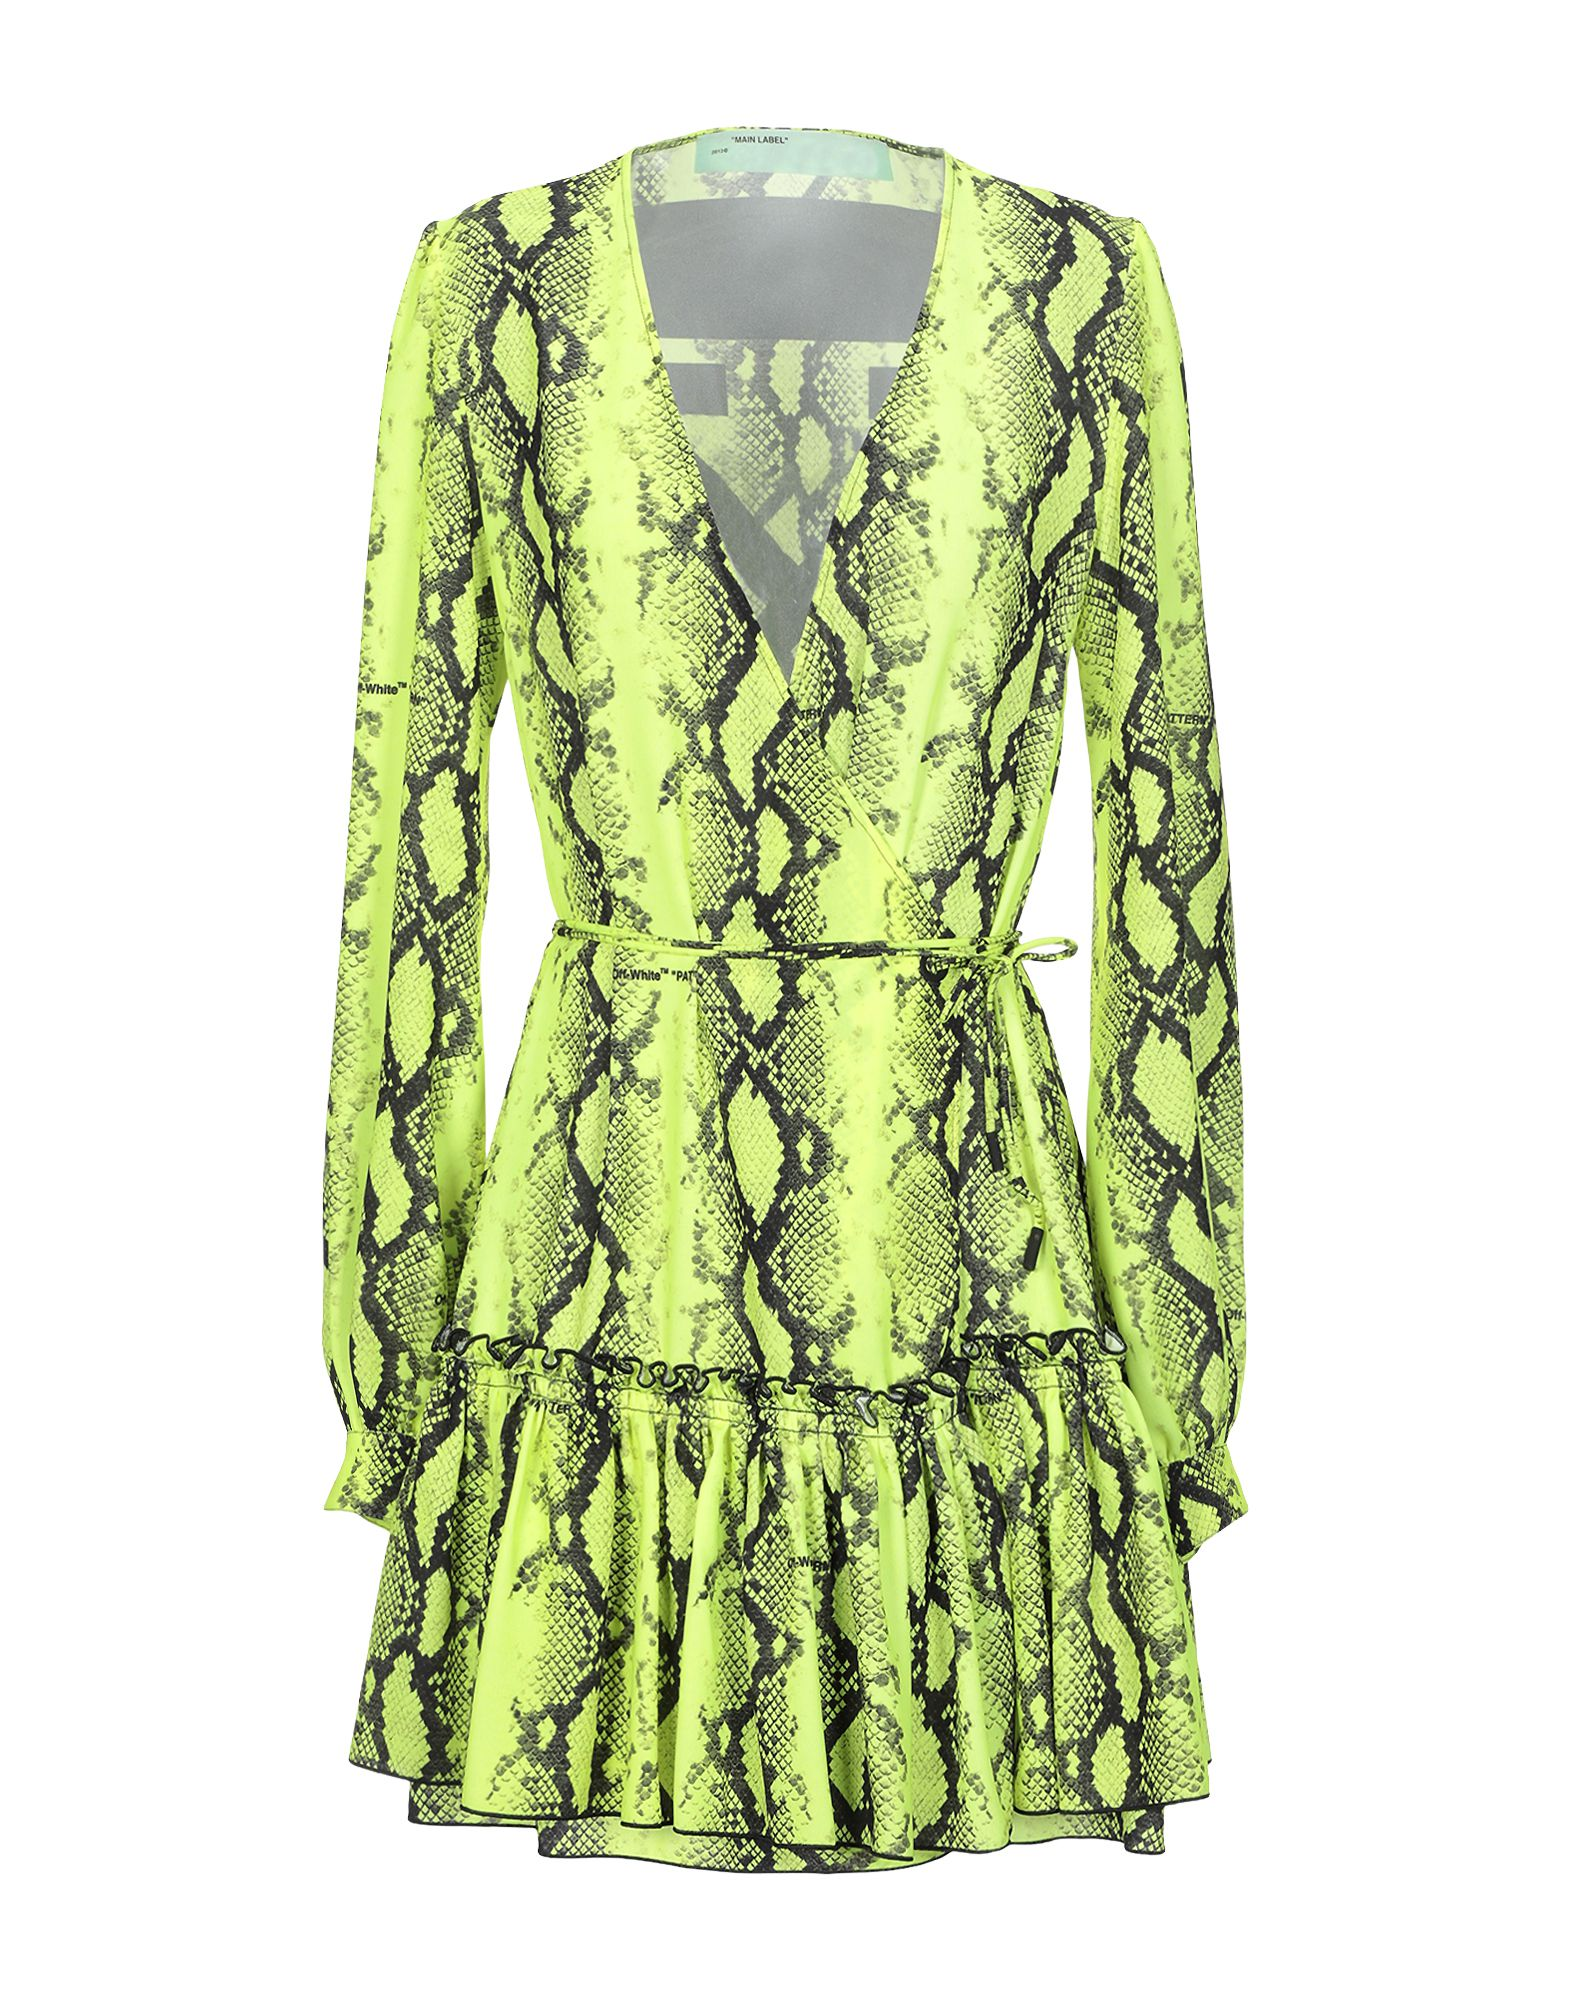 OFF-WHITE™ Short dresses. crepe, belt, animal print, v-neck, long sleeves, no pockets, front slit, front closure, self-tie wrap closure, unlined. 100% Polyester